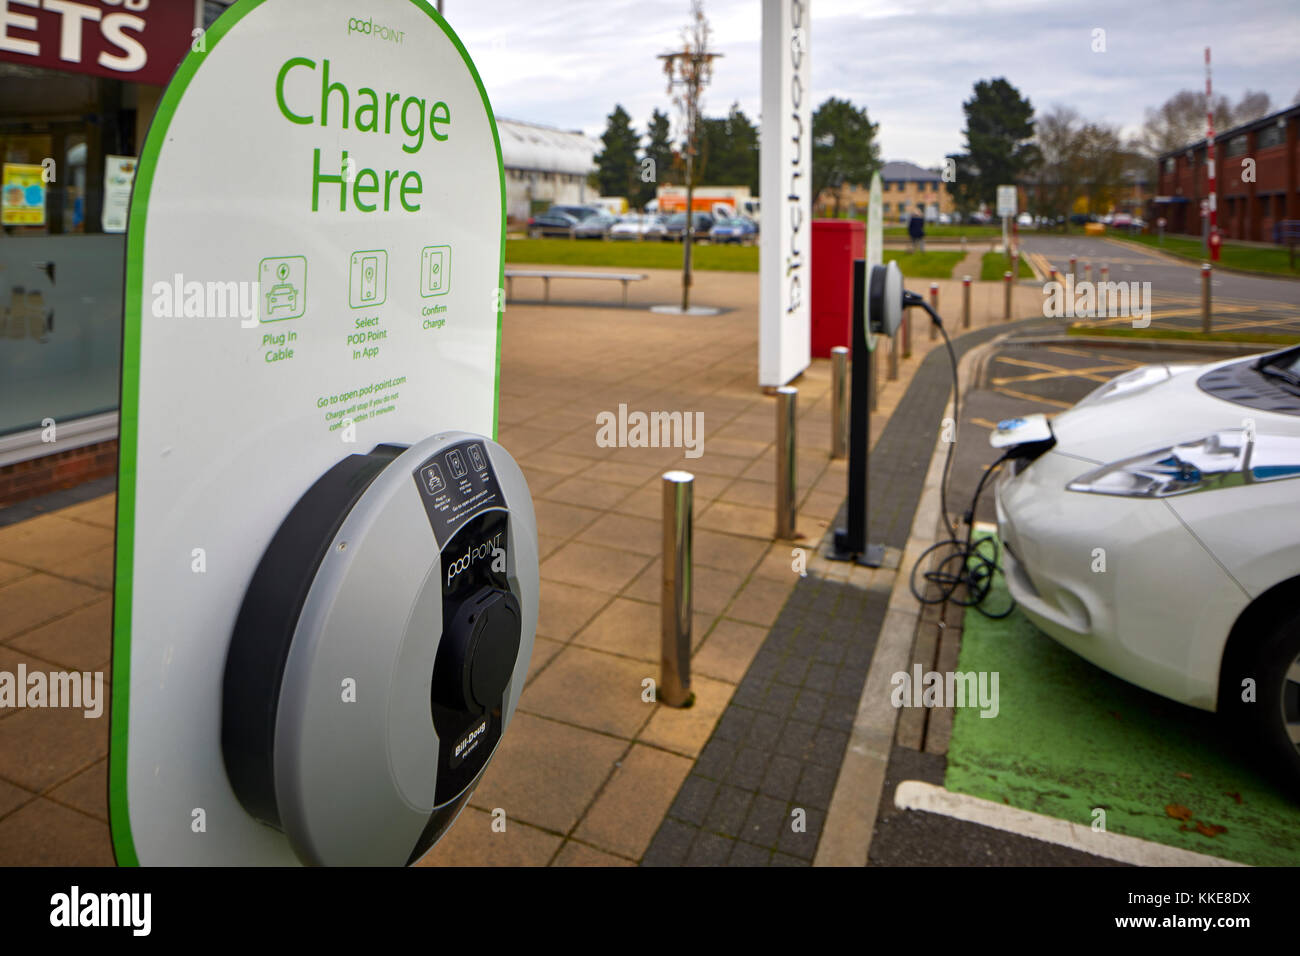 Burtonwood shopping centre in Warrington, an electric Nissan Leaf car parked in a dedicated parking bay for recharging - Stock Image